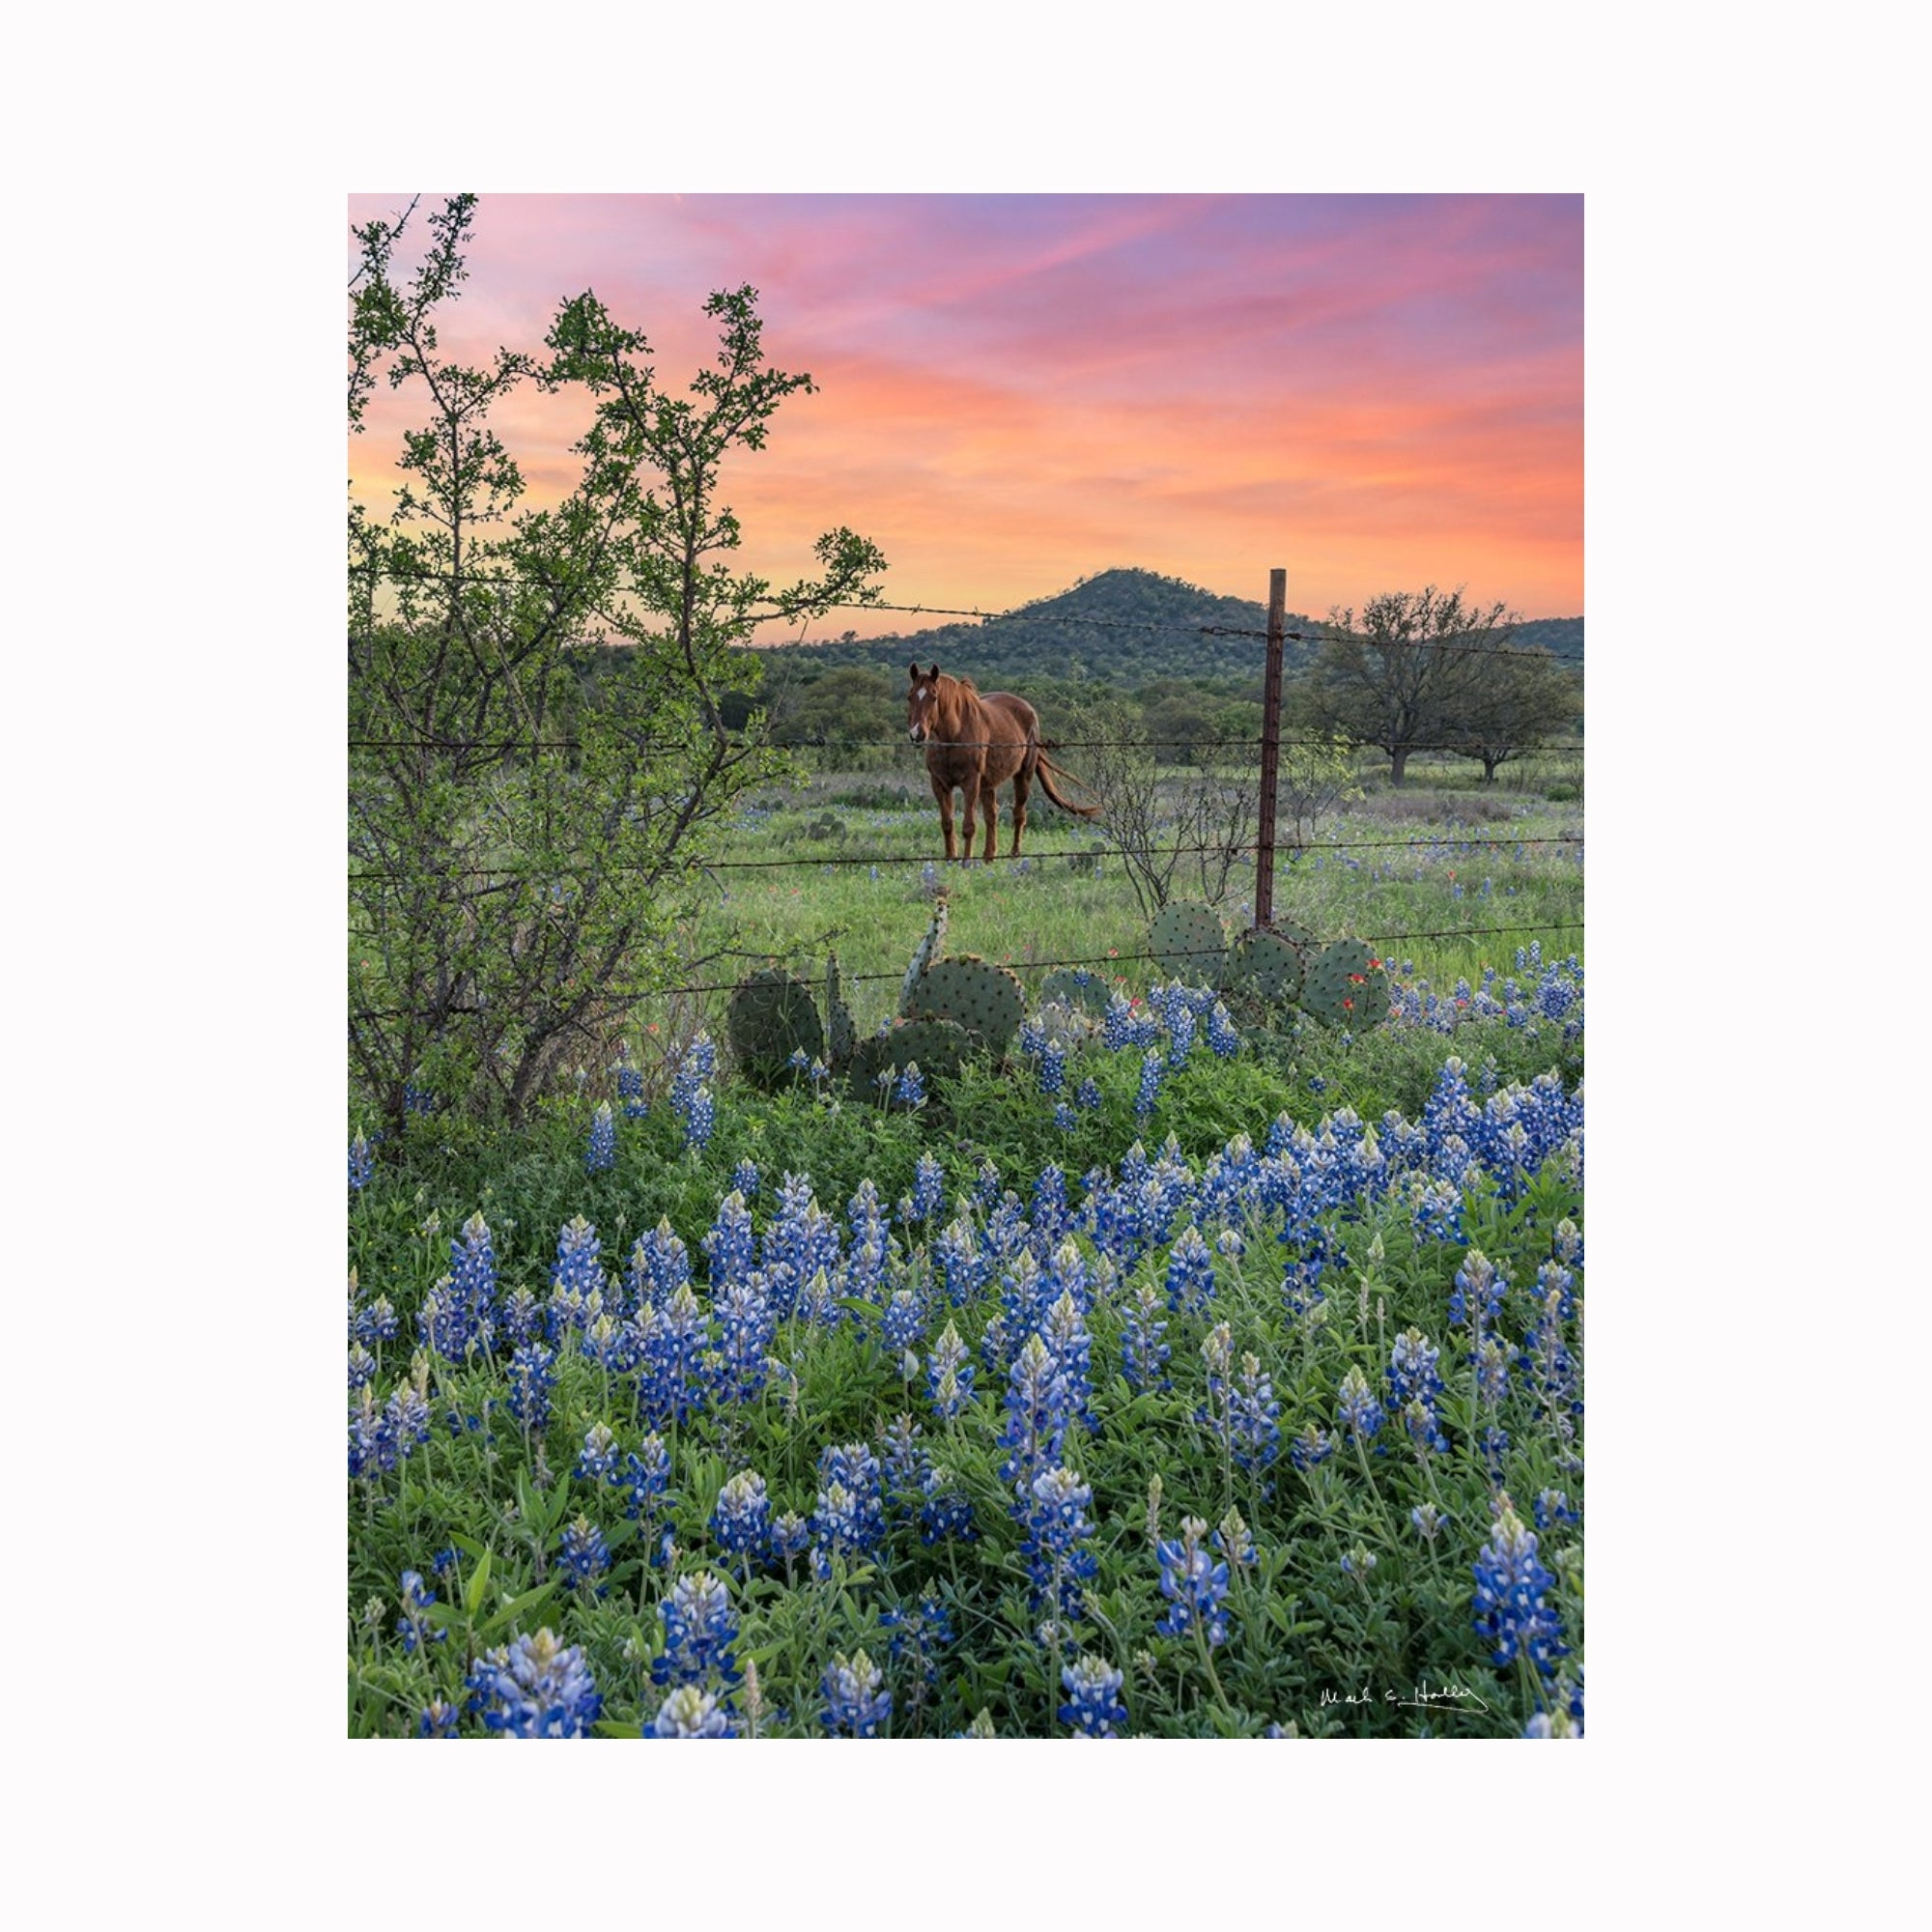 """Bluebonnets & Horses"" by Texas digital photographer Mark Holly 